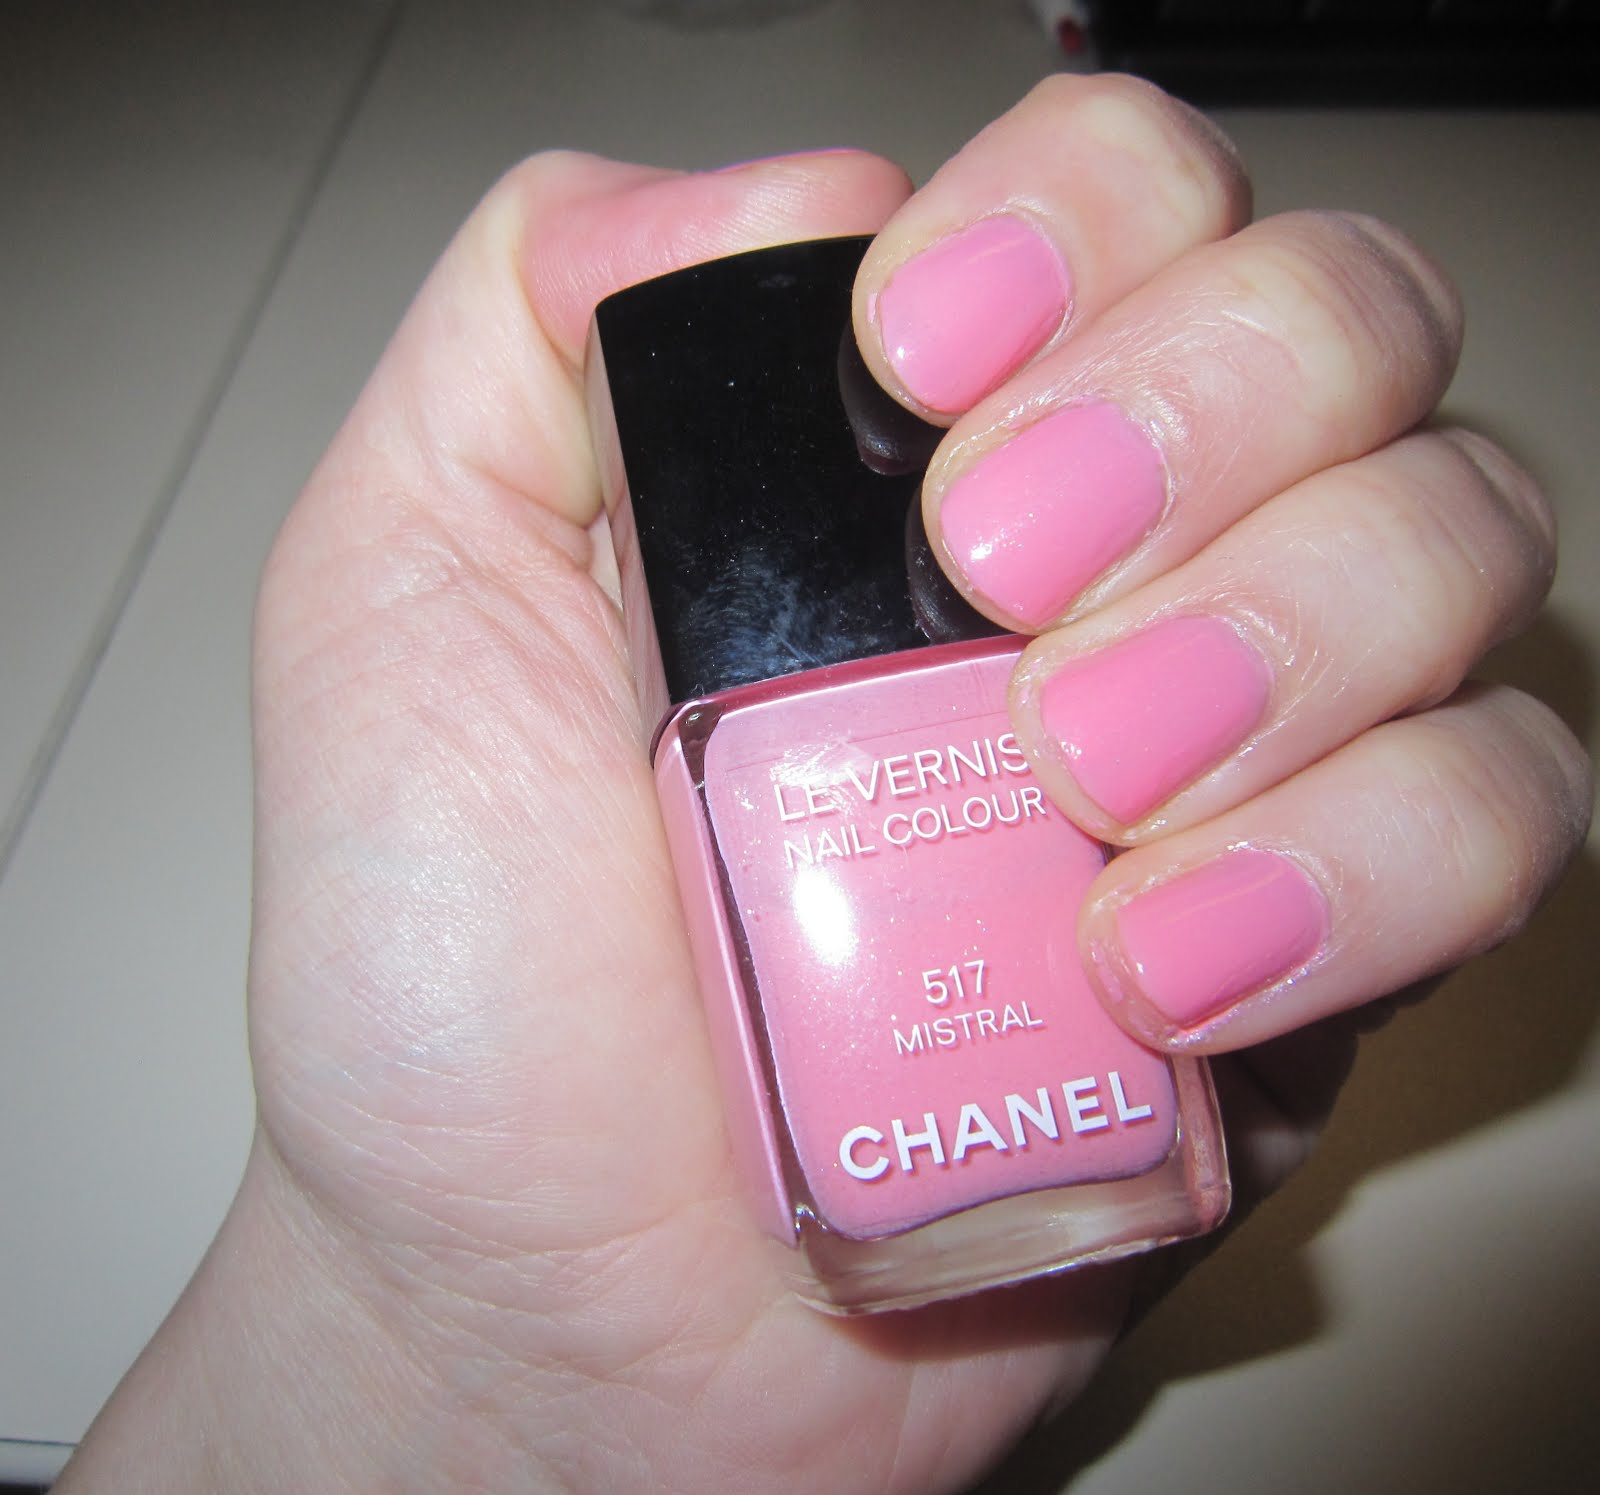 chanel nail polish pink images galleries with a bite. Black Bedroom Furniture Sets. Home Design Ideas